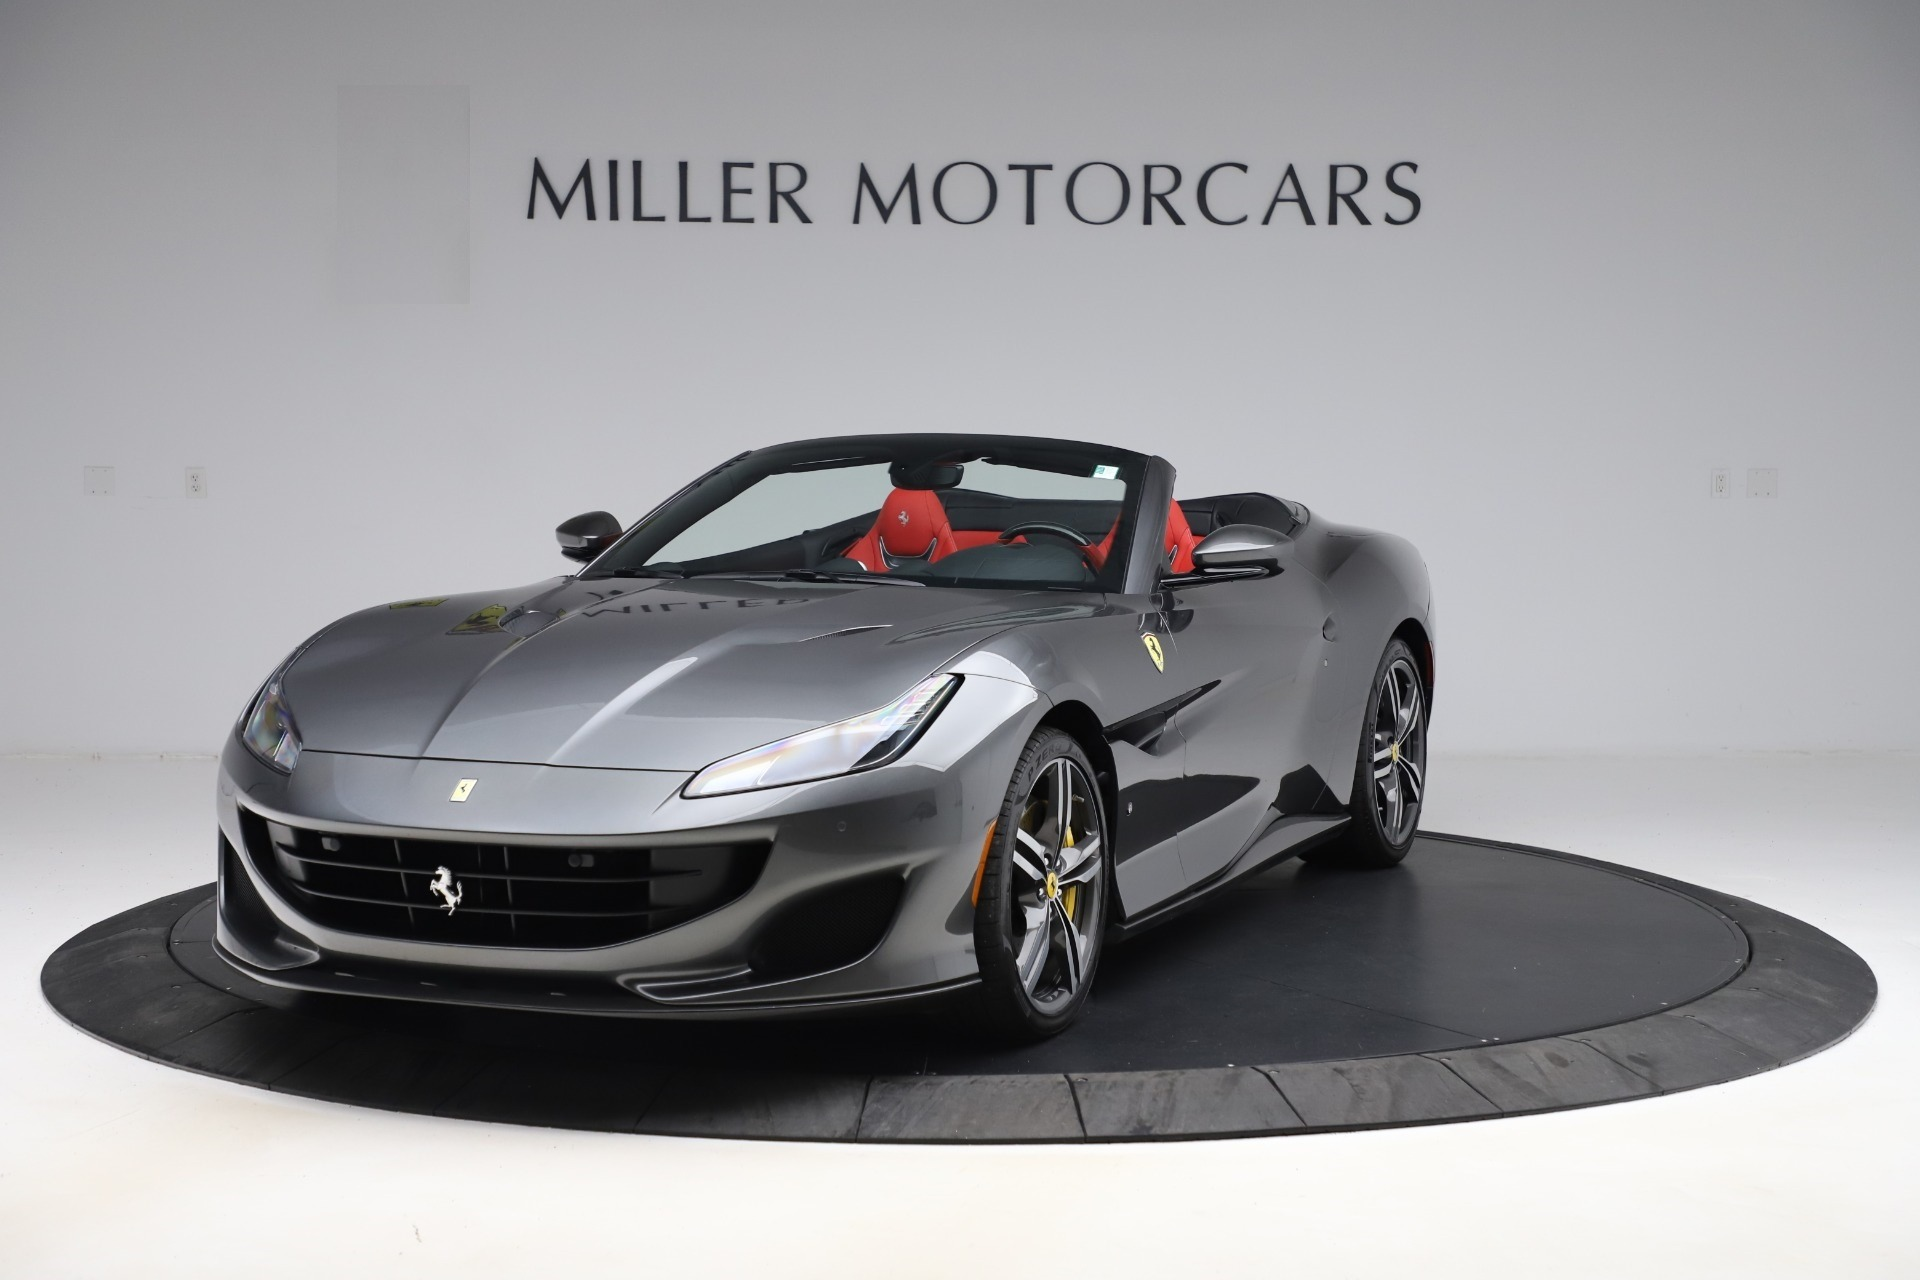 Used 2019 Ferrari Portofino for sale $231,900 at Bentley Greenwich in Greenwich CT 06830 1